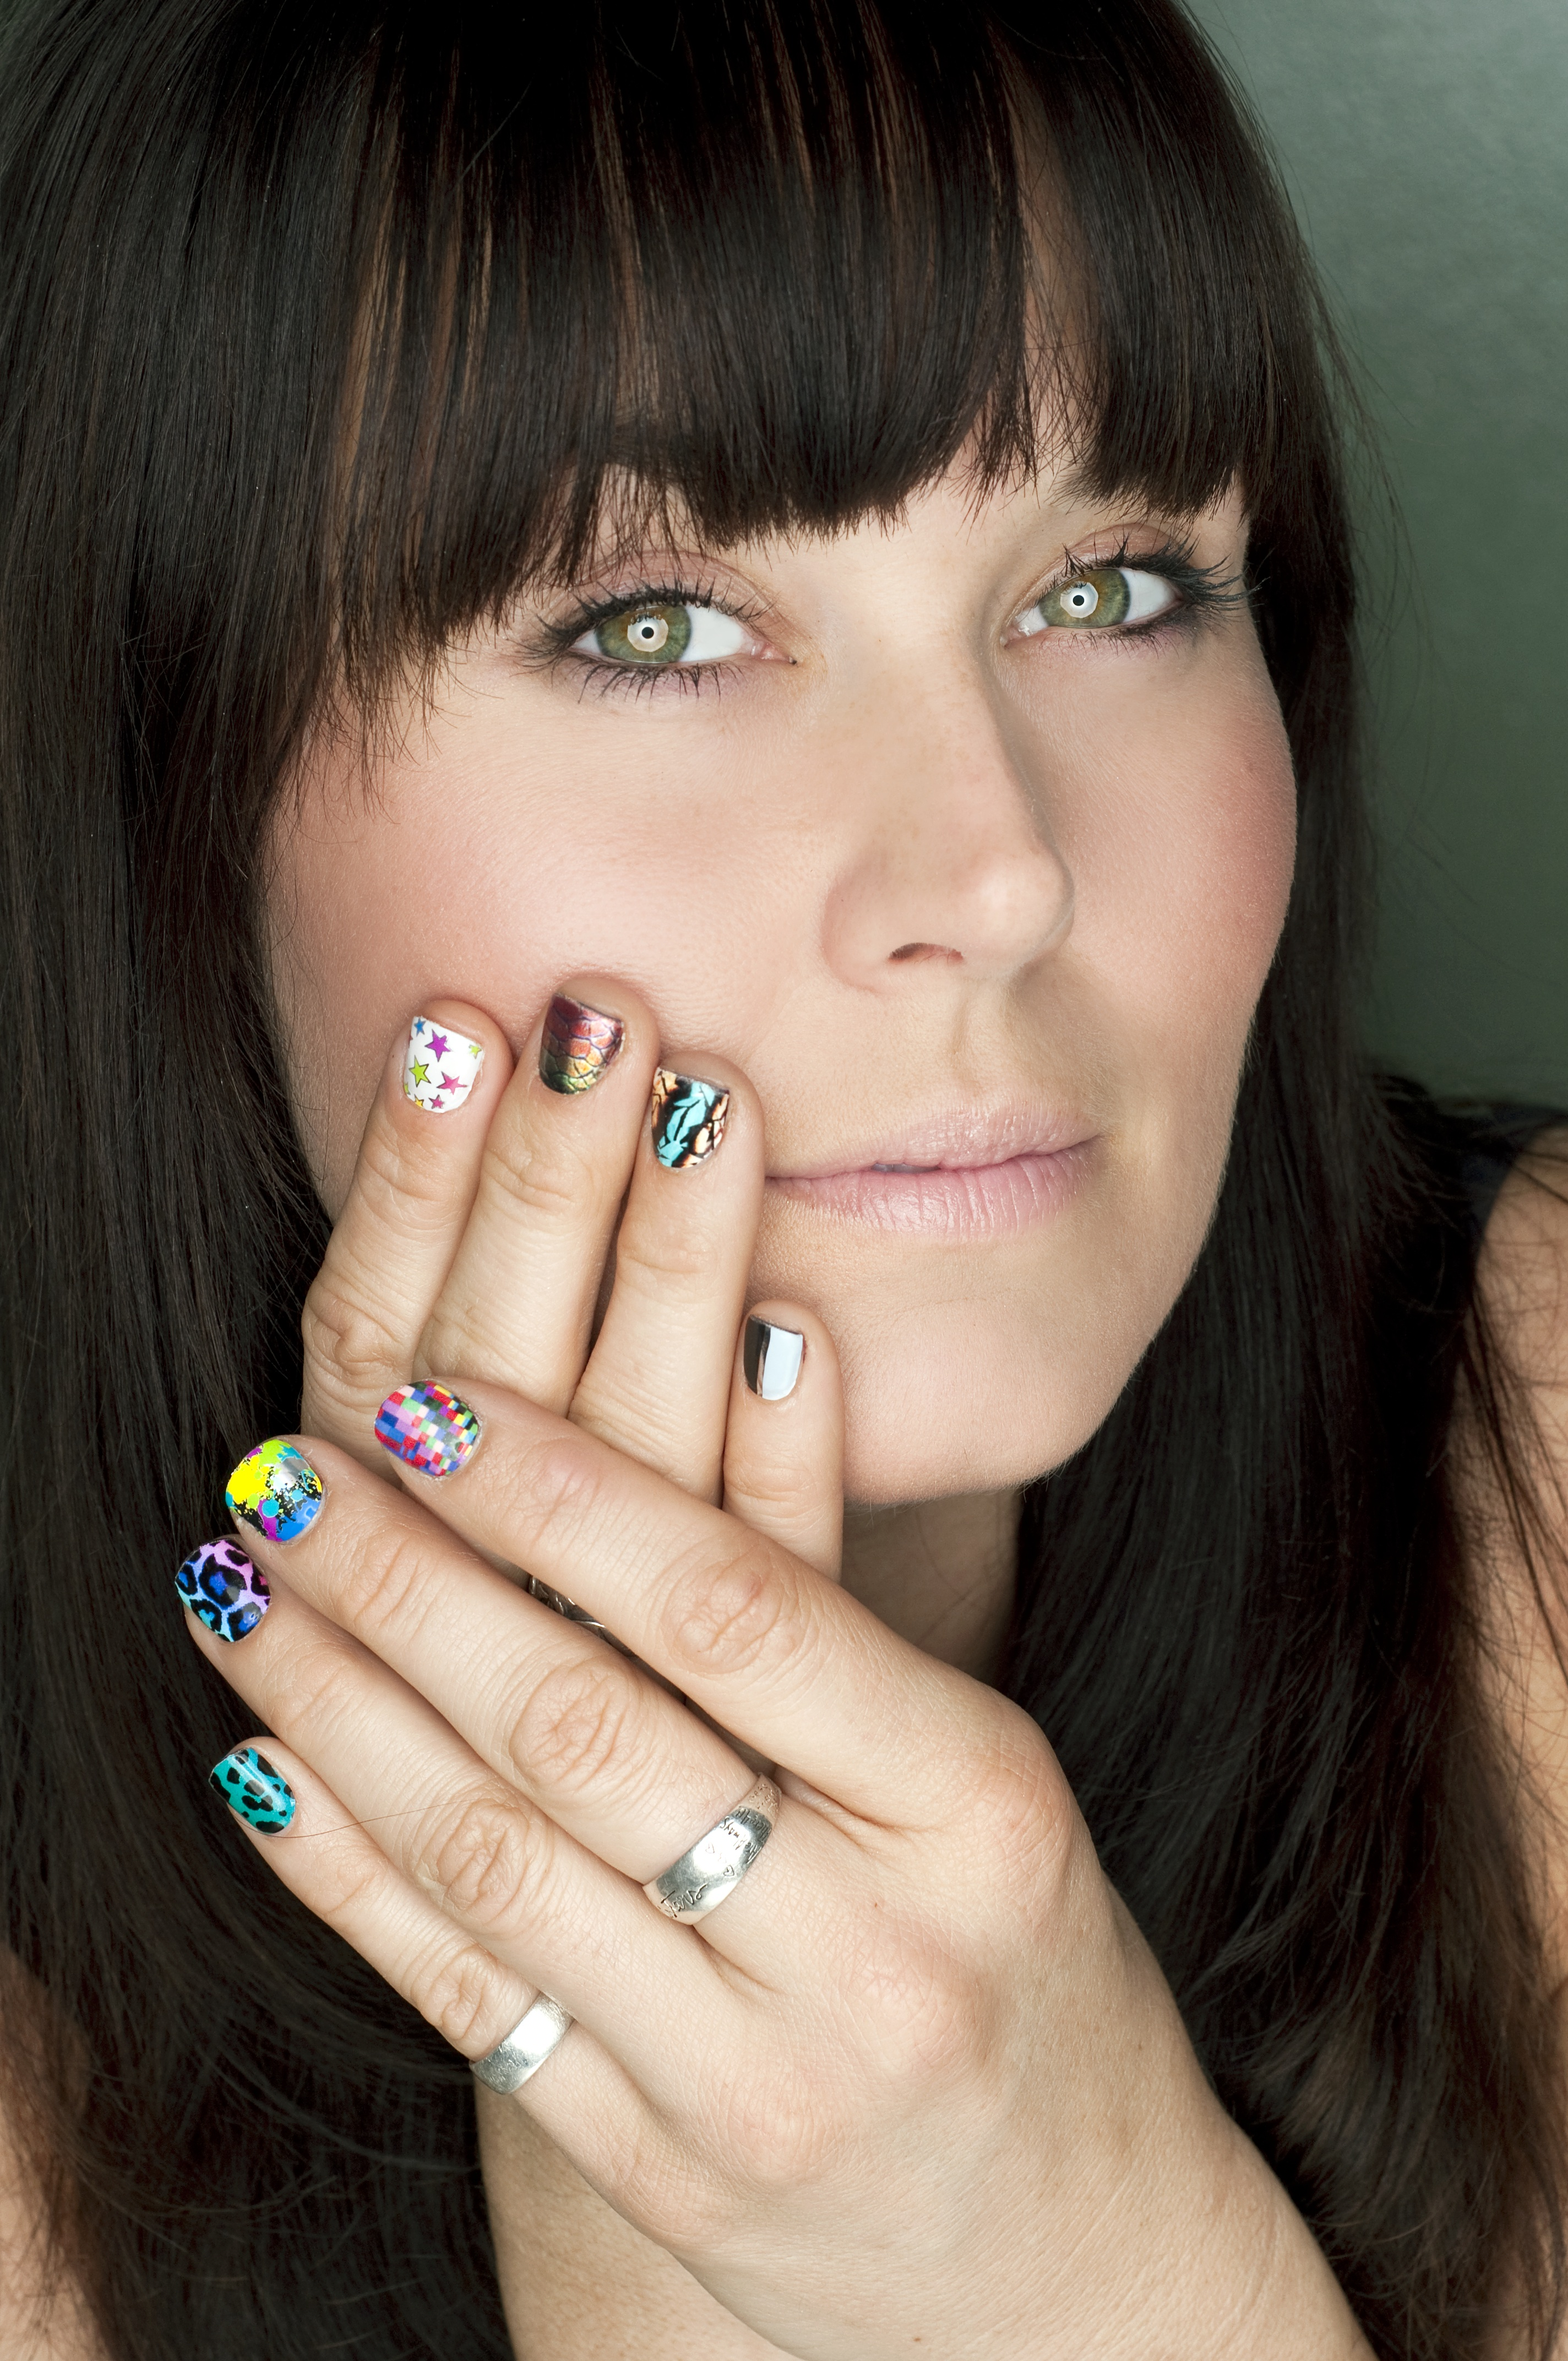 Celebrity Nail Technician Kimmie Kyees – wild pieces